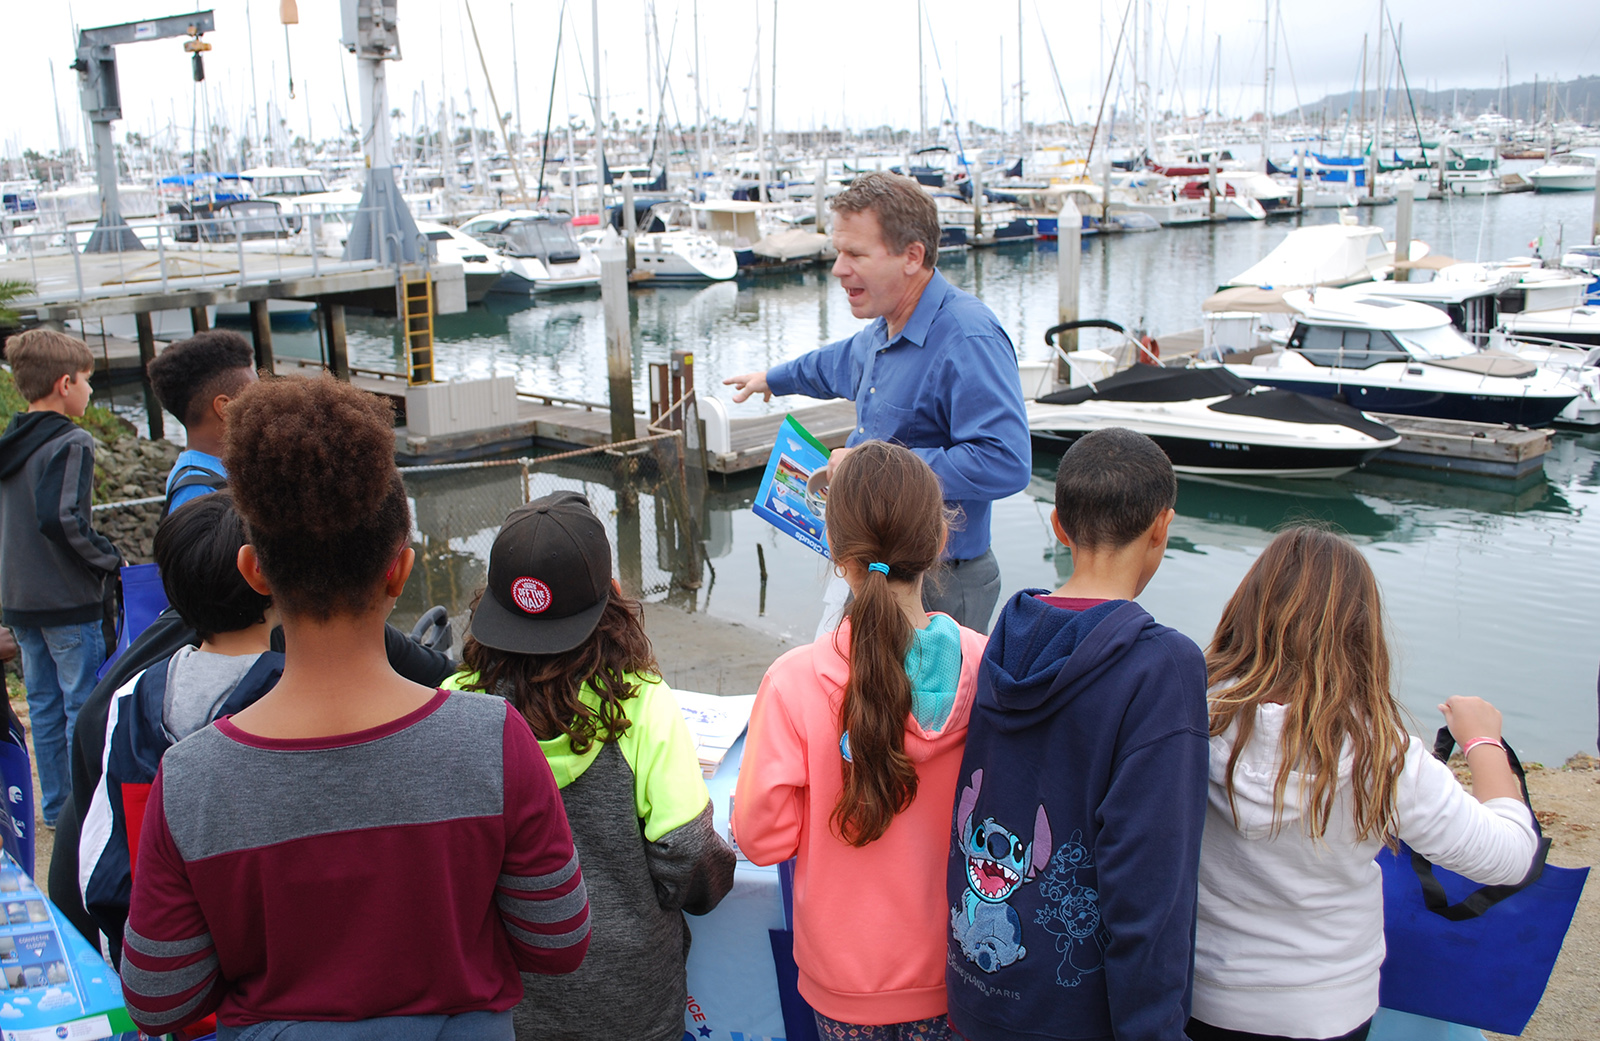 Meteorologist Alex Tardy with the National Weather Service San Diego office talks to Cabrillo fourth graders about how being in a boat in a marina is an unsafe place to be during a tsunami because they will all get knocked around and collide.